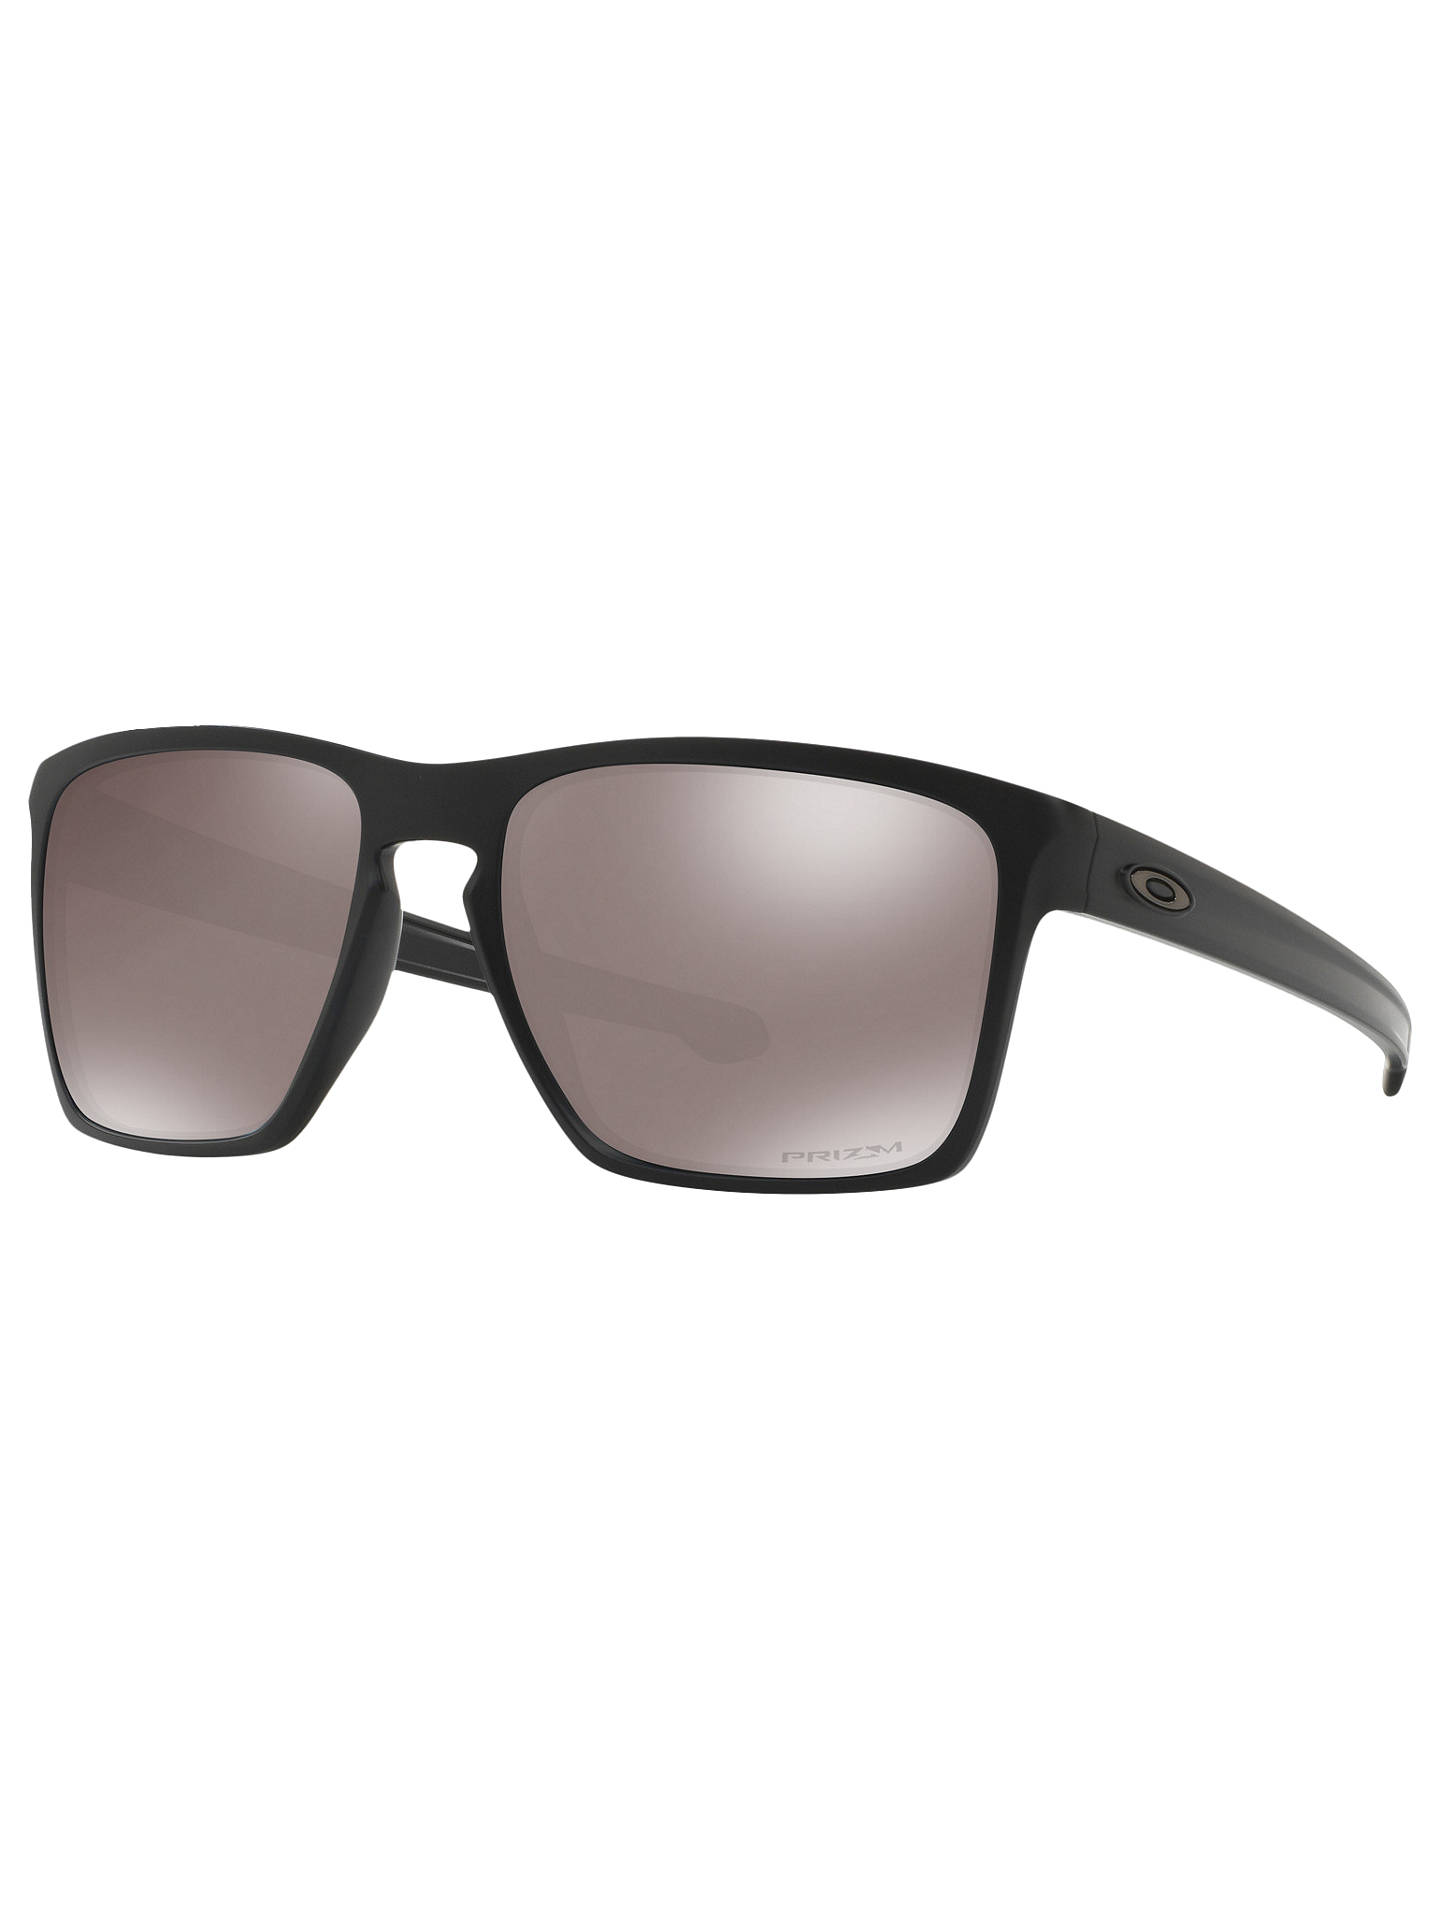 f27a8d15f4 Oakley OO9341 Men s Sliver Prizm Polarised Square Sunglasses at John ...